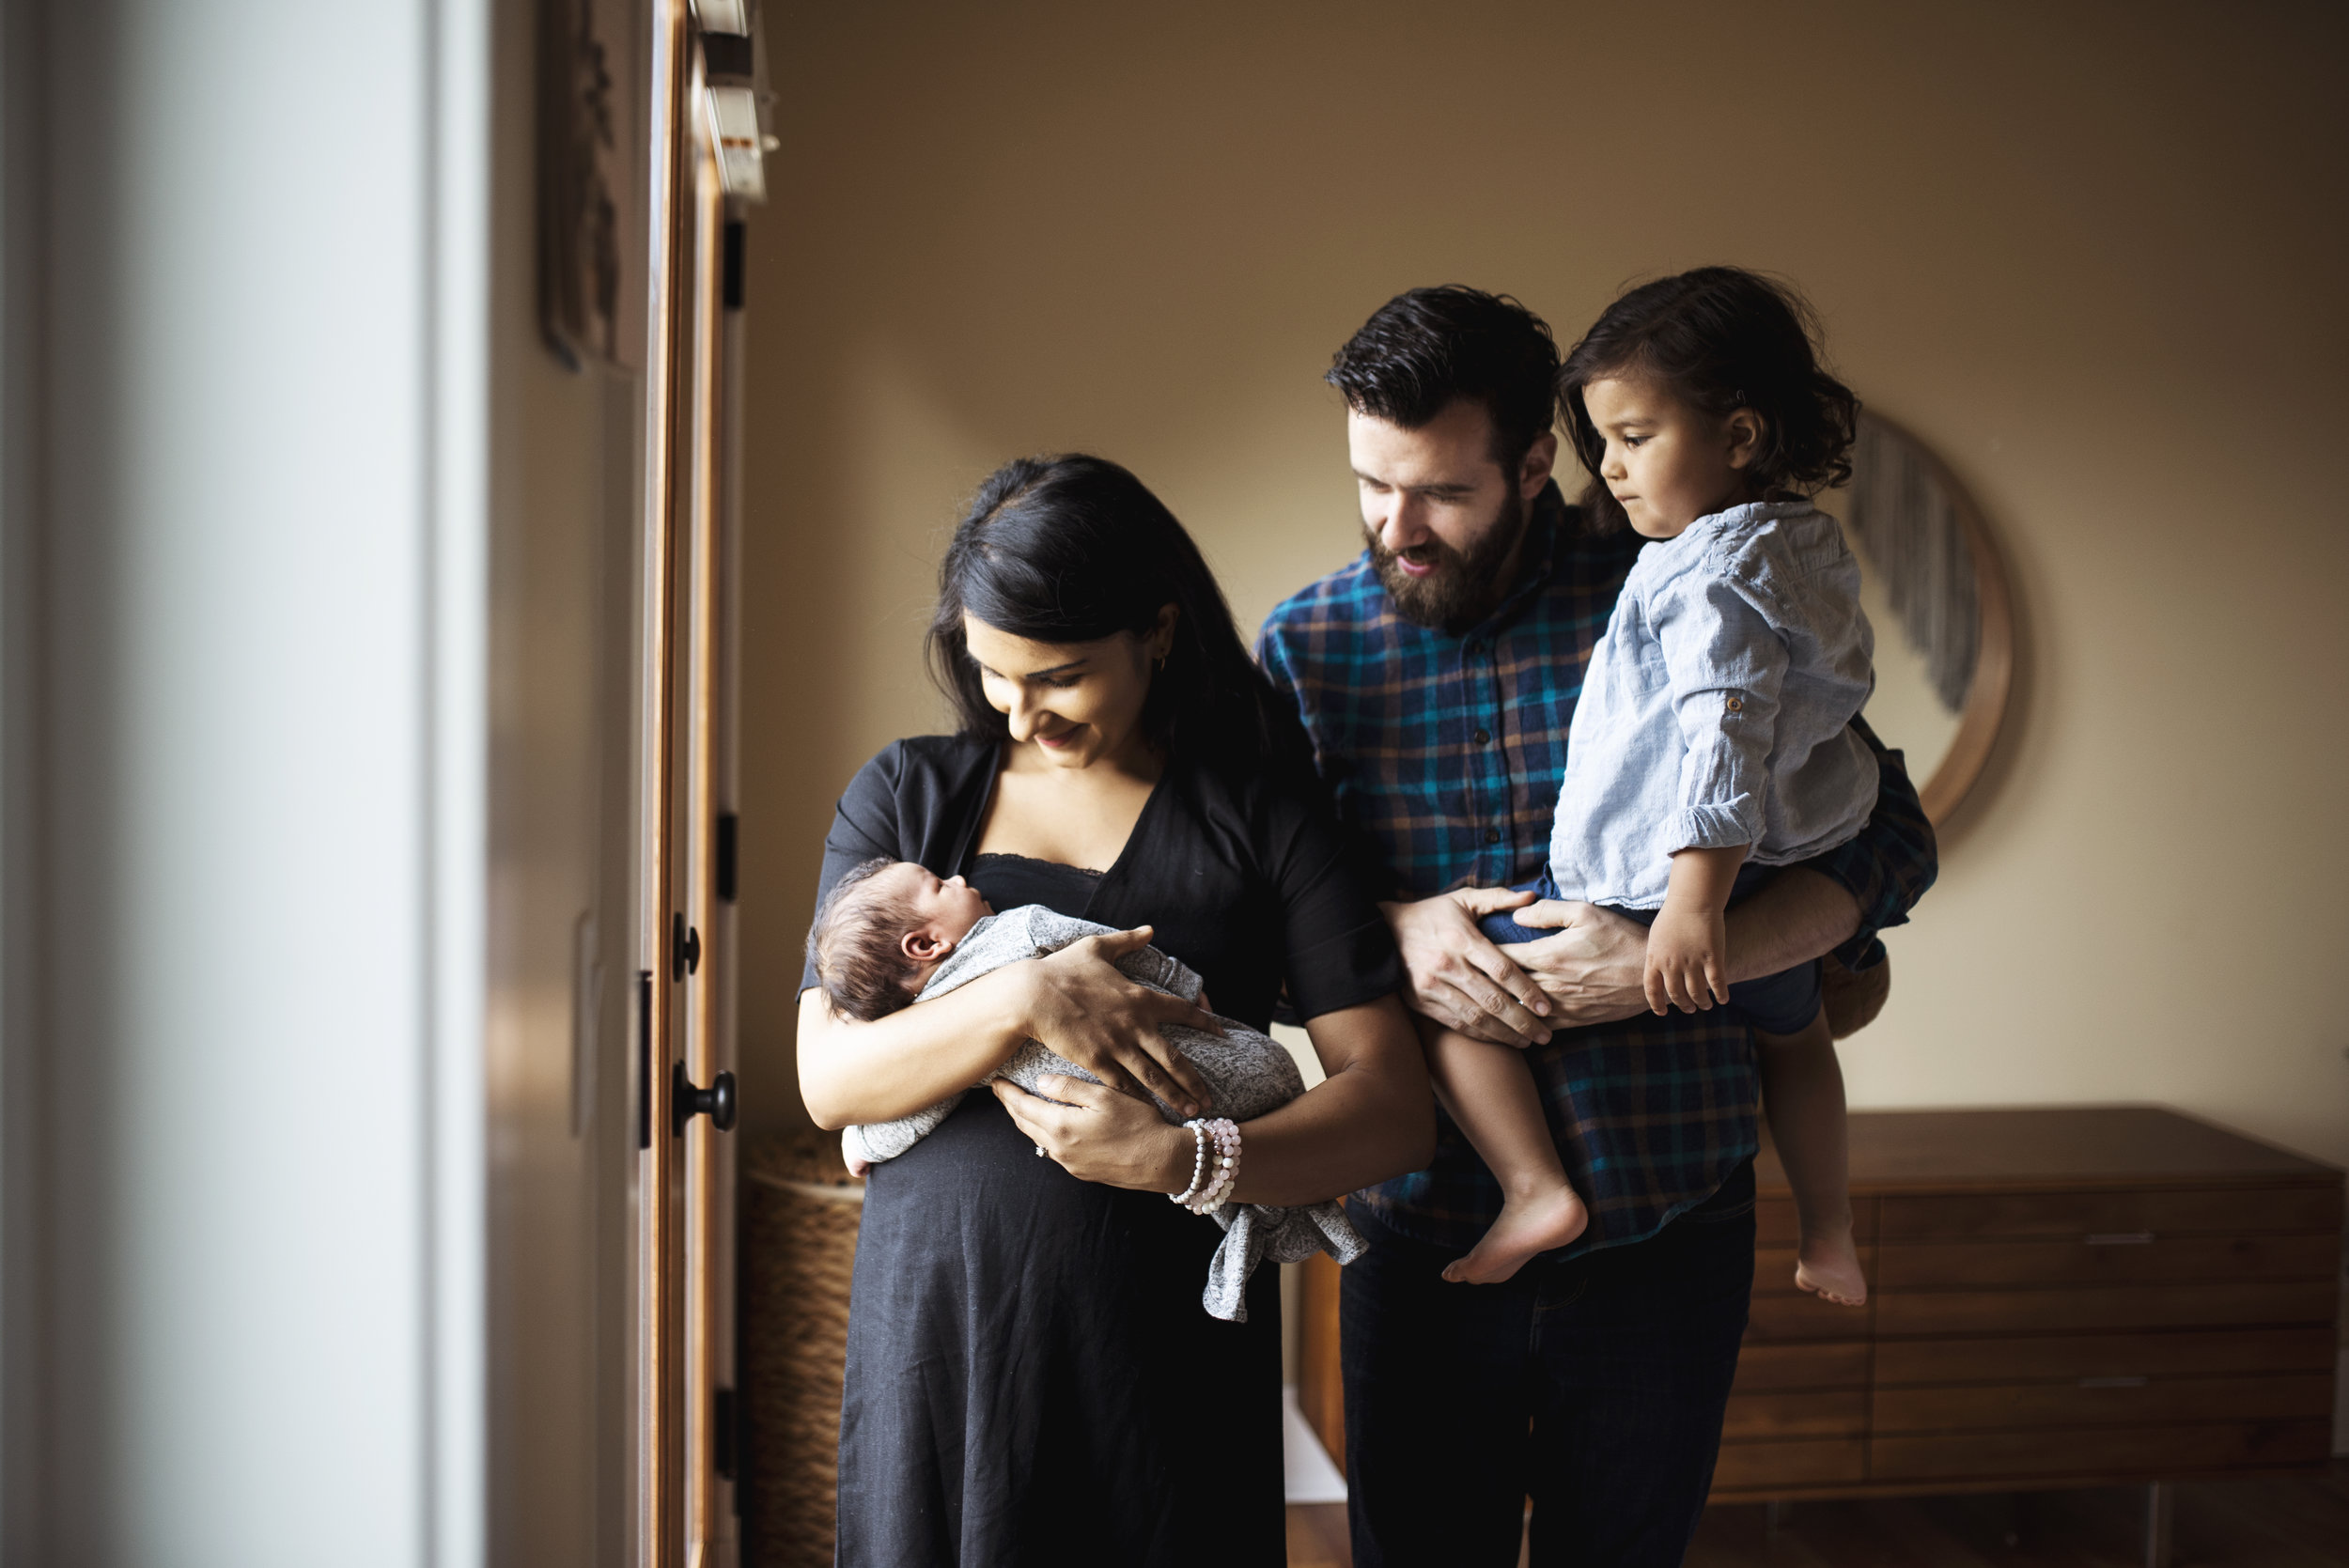 Everett newborn photography family standing by window while mom holds baby, dad and big brother look on